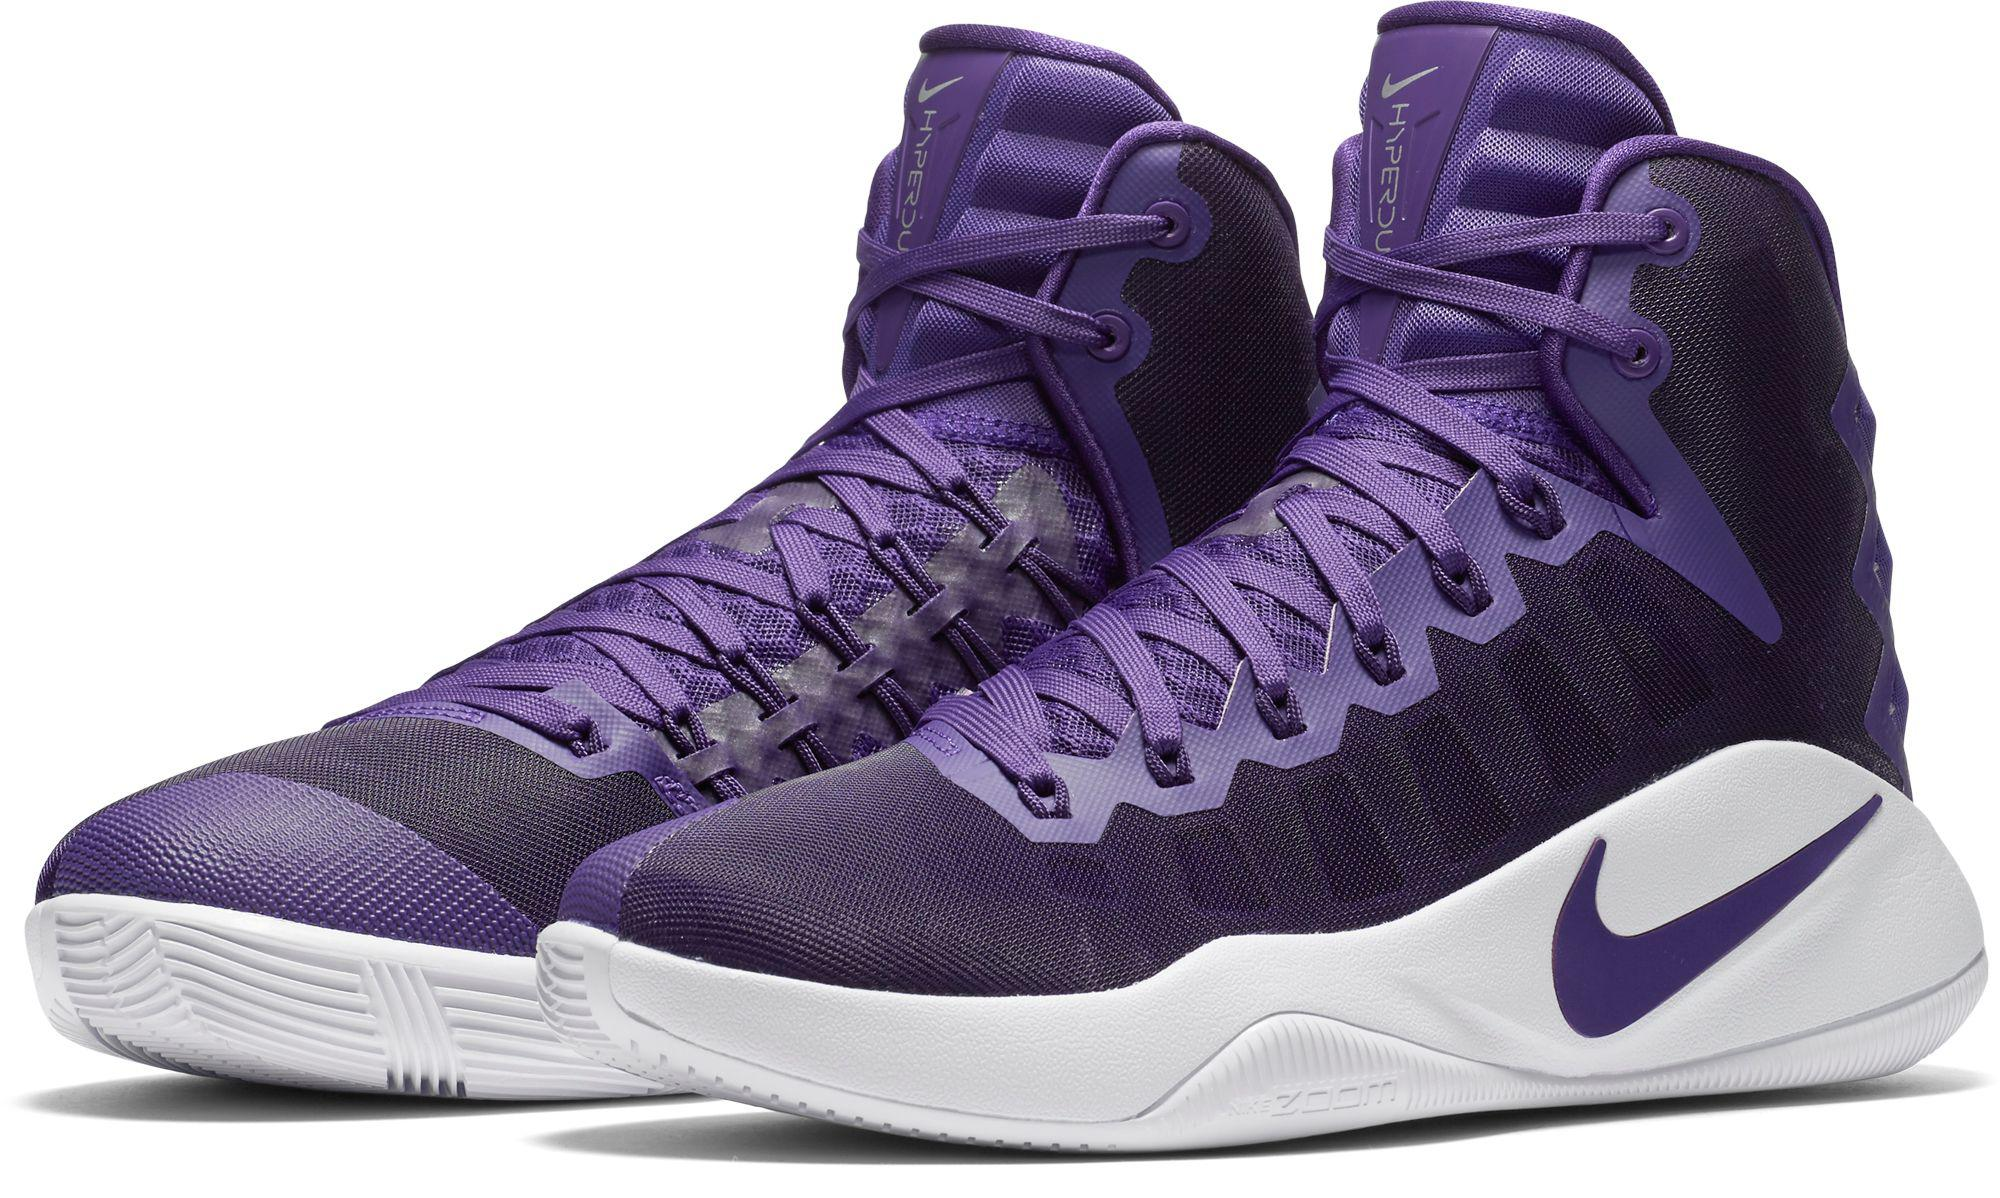 new arrivals 3182f 26198 nike hyperdunk 2016 purple